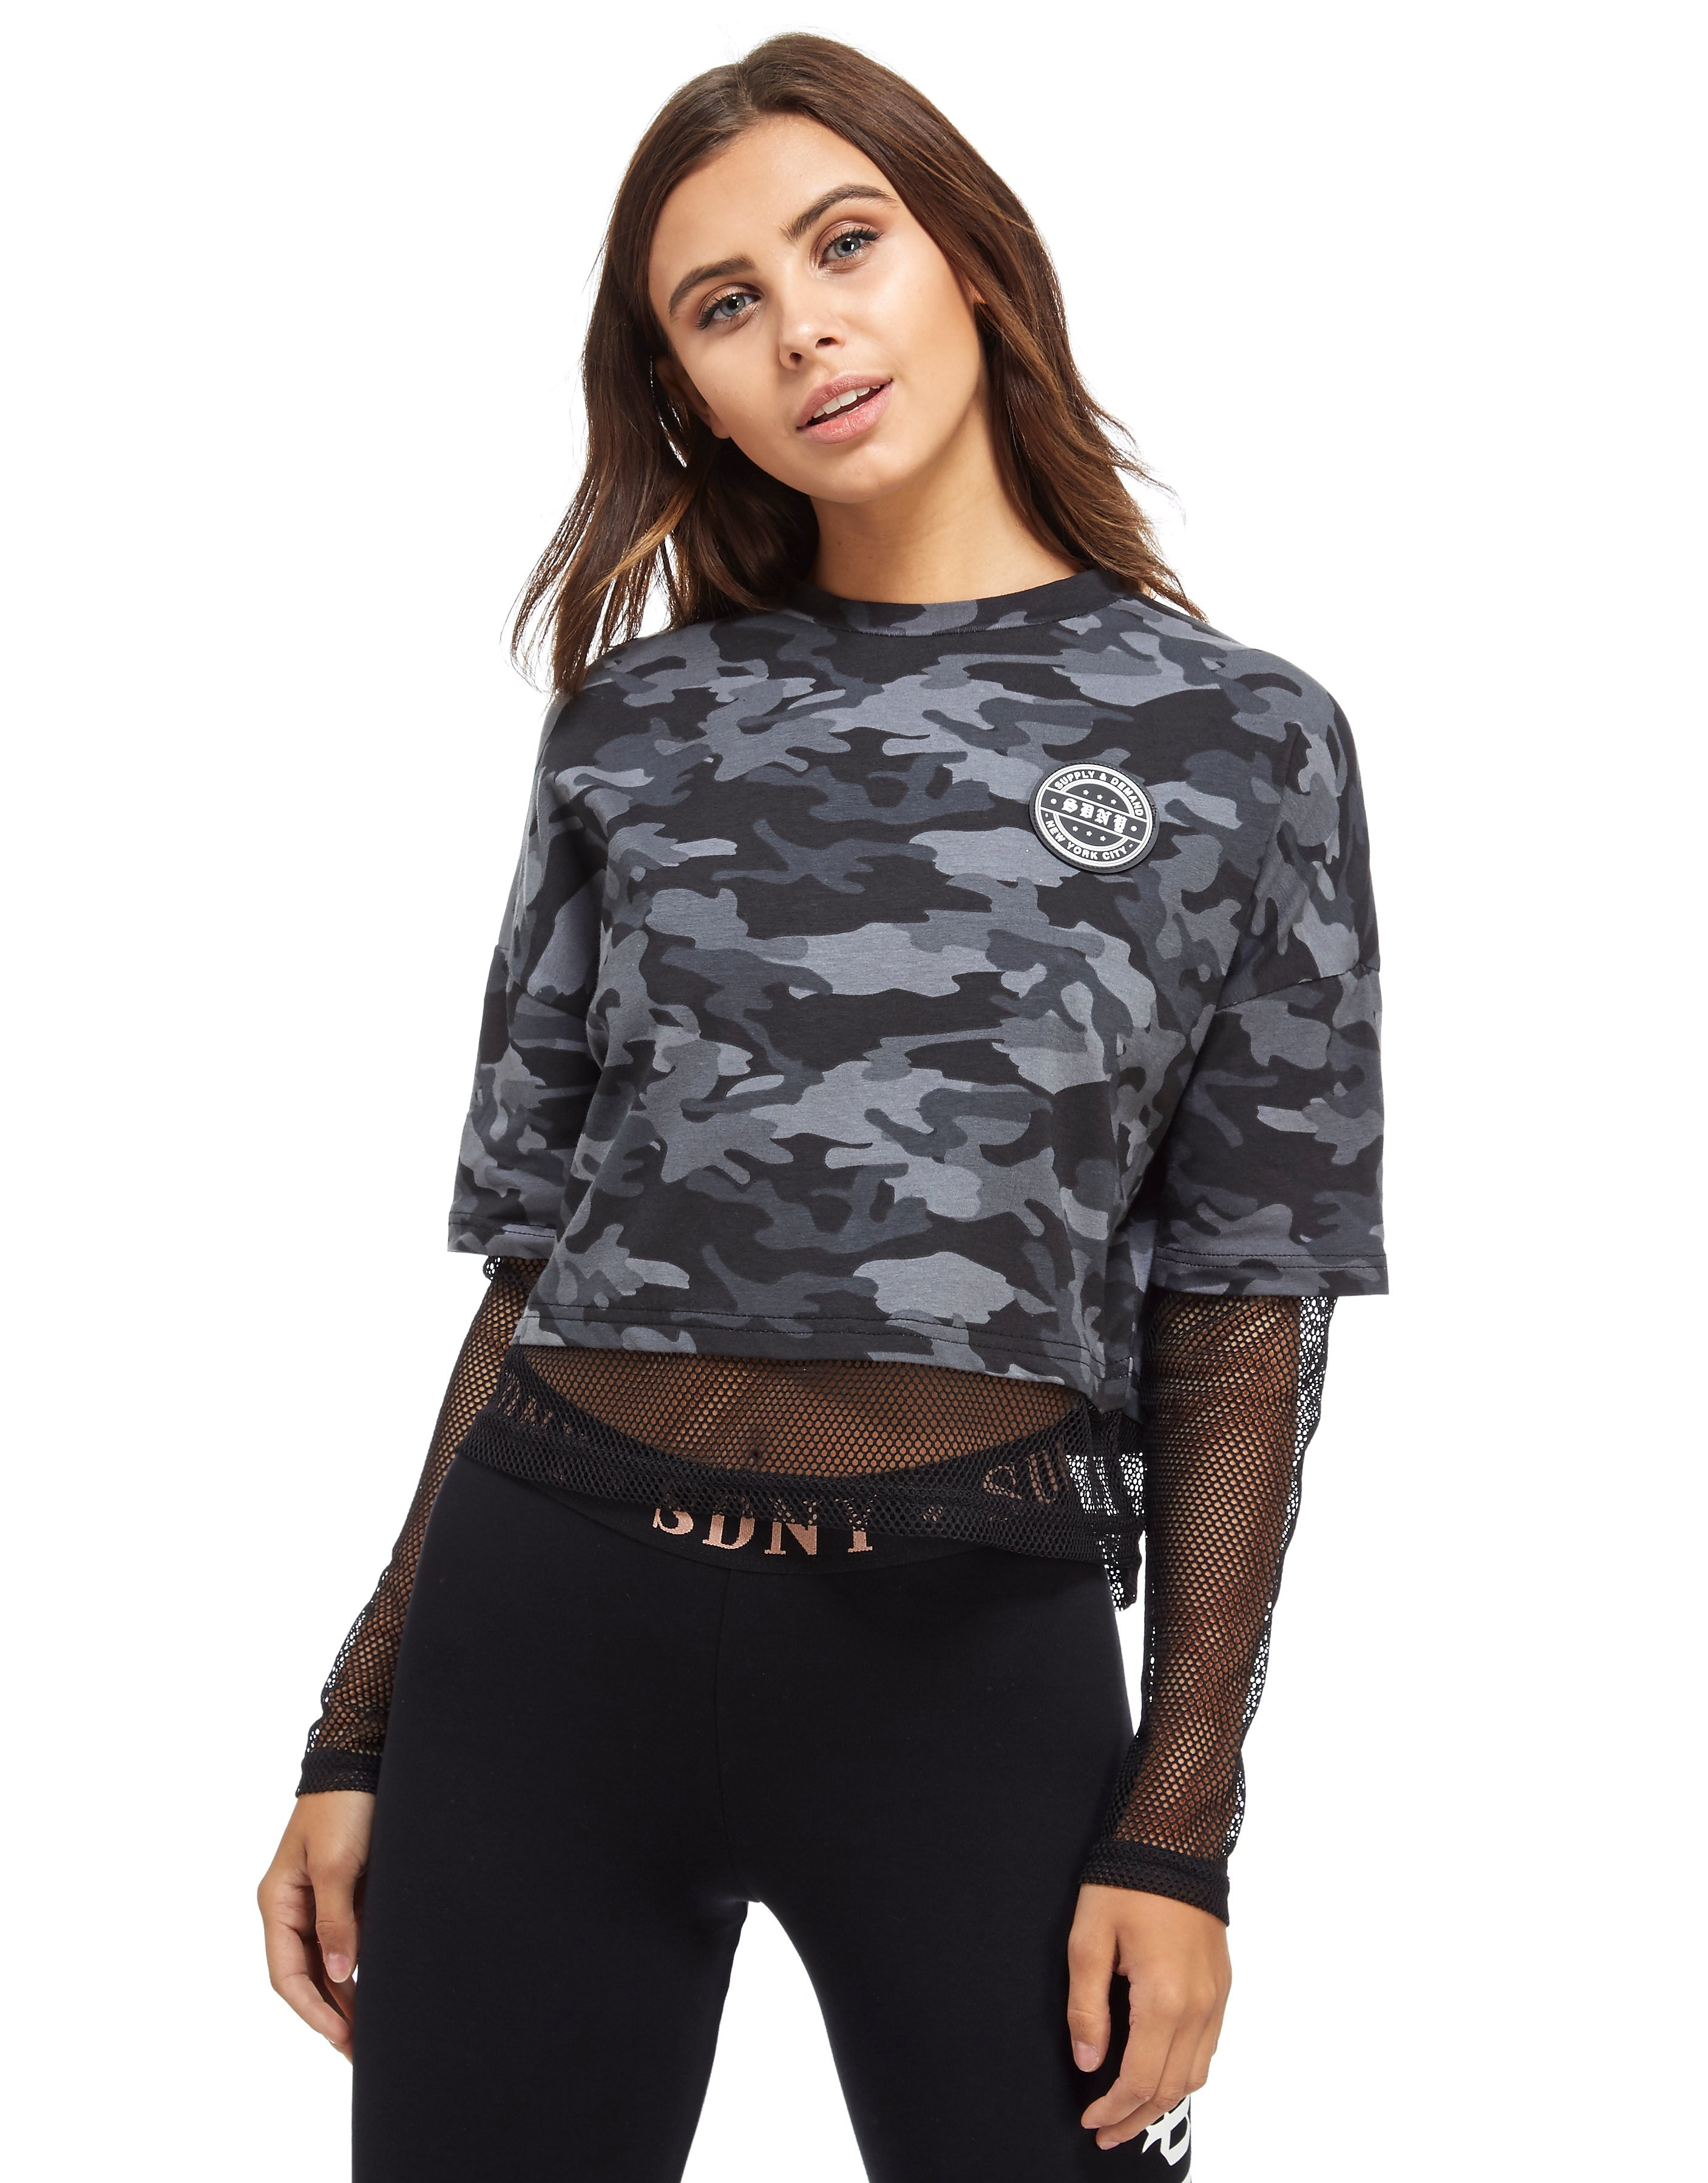 Supply & Demand Fishnet Camo T-Shirt